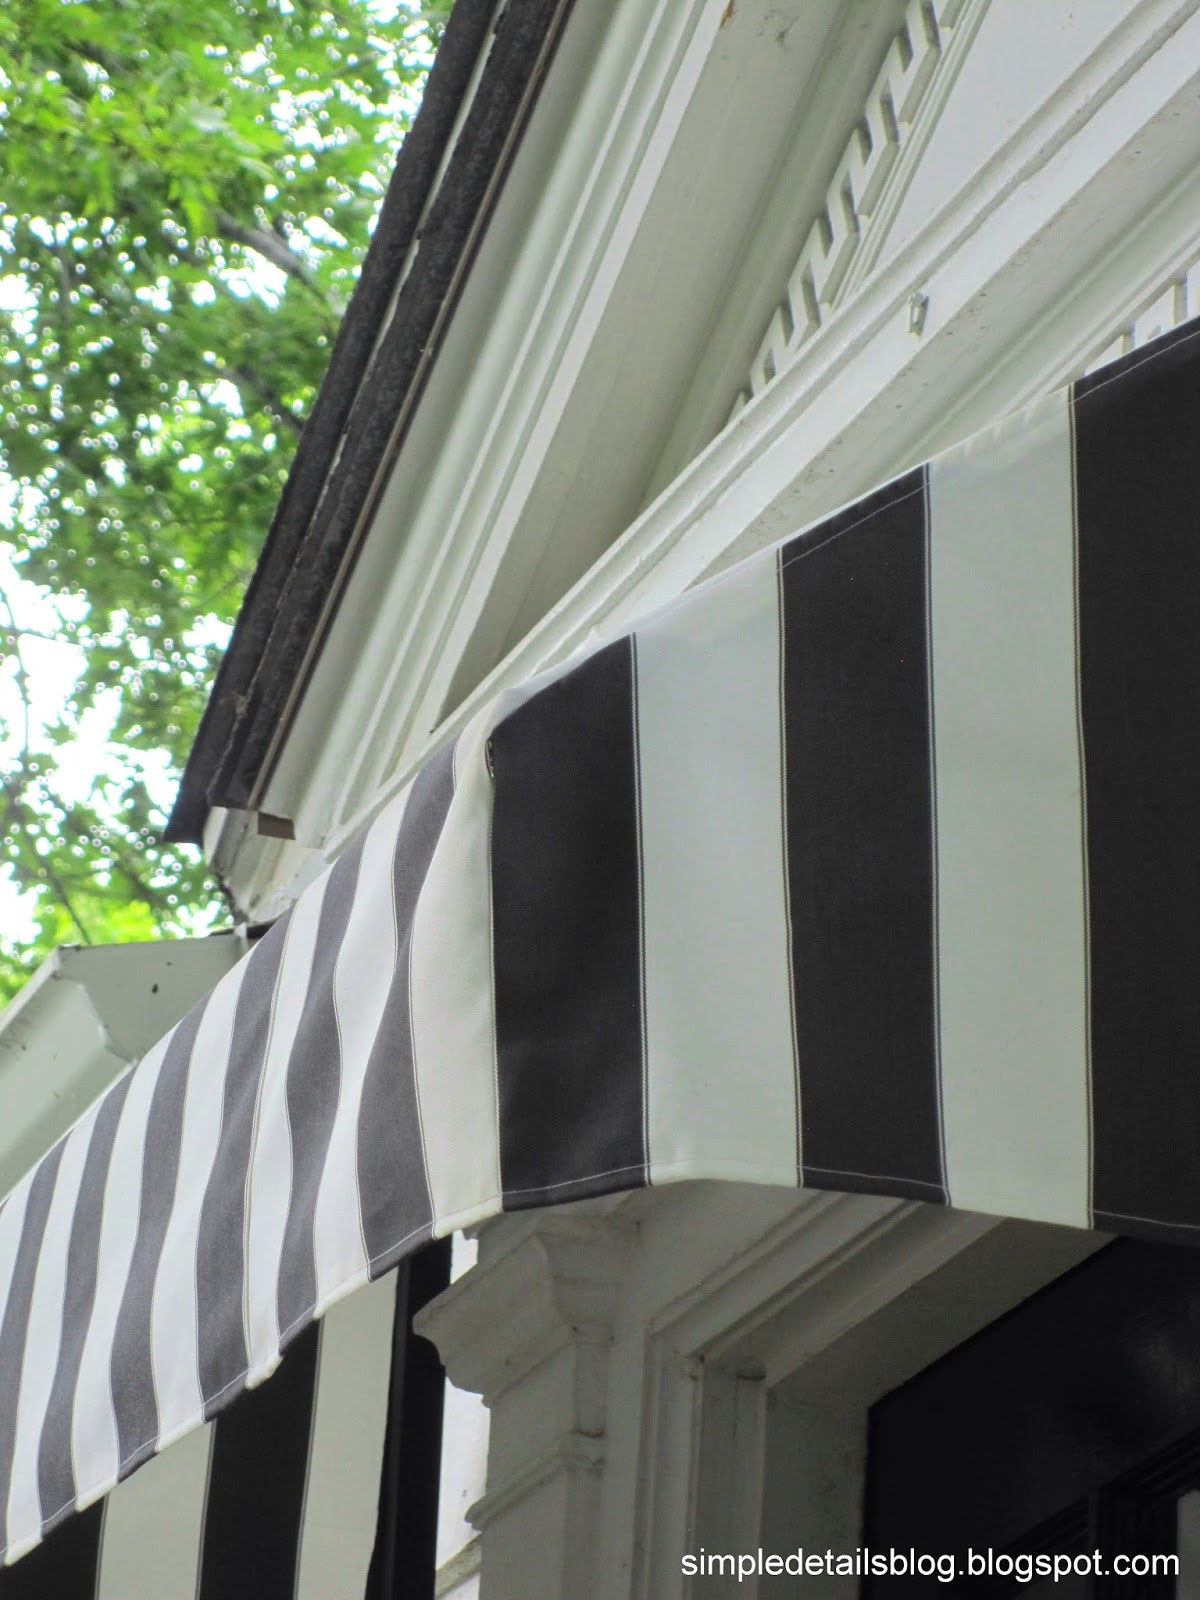 Simple Details: diy black and white awning reveal...